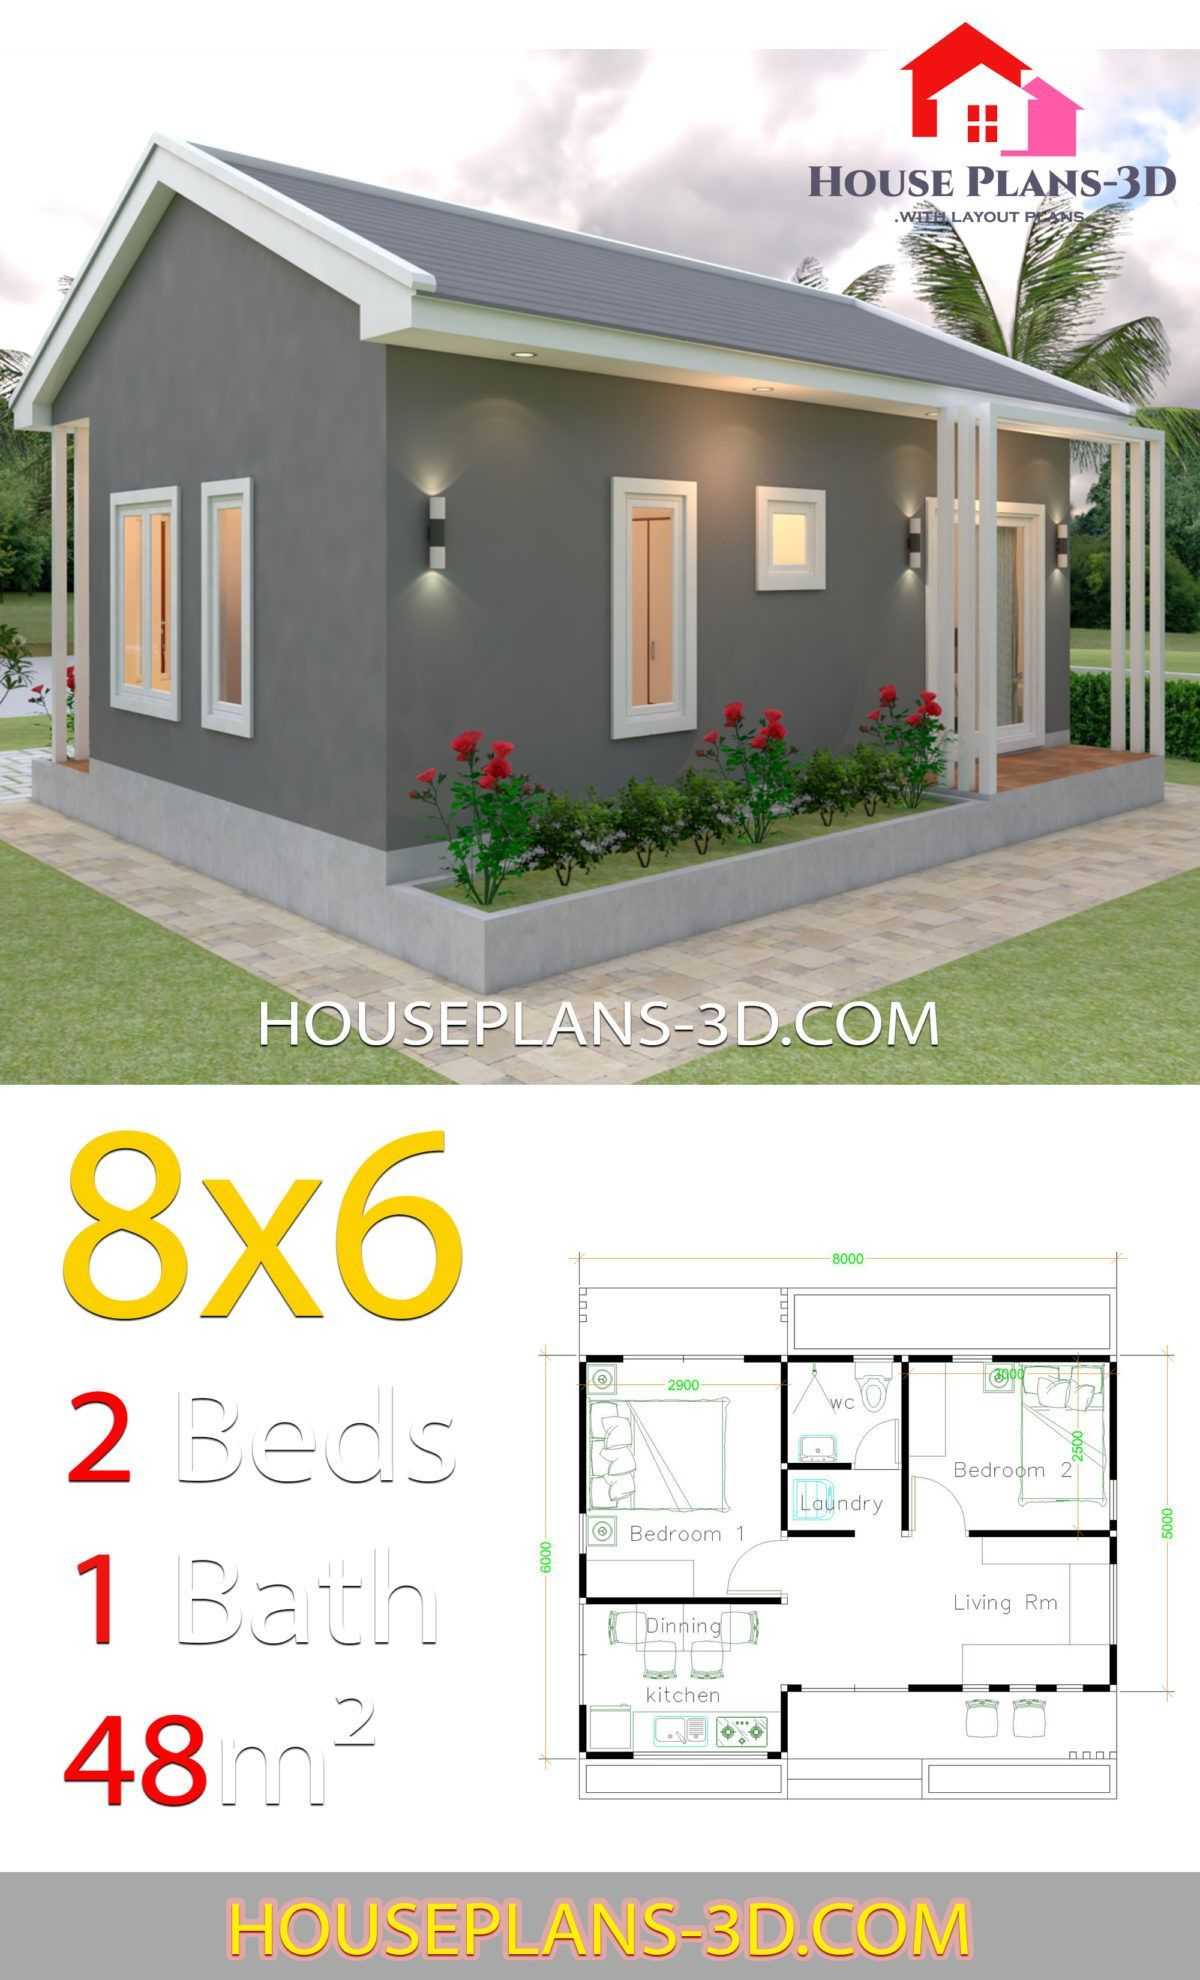 House Design Plans 8x6 With 2 Bedrooms House Plans 3d Haus Design Plans House Plans Home Design Floor Plans Home Design Plans